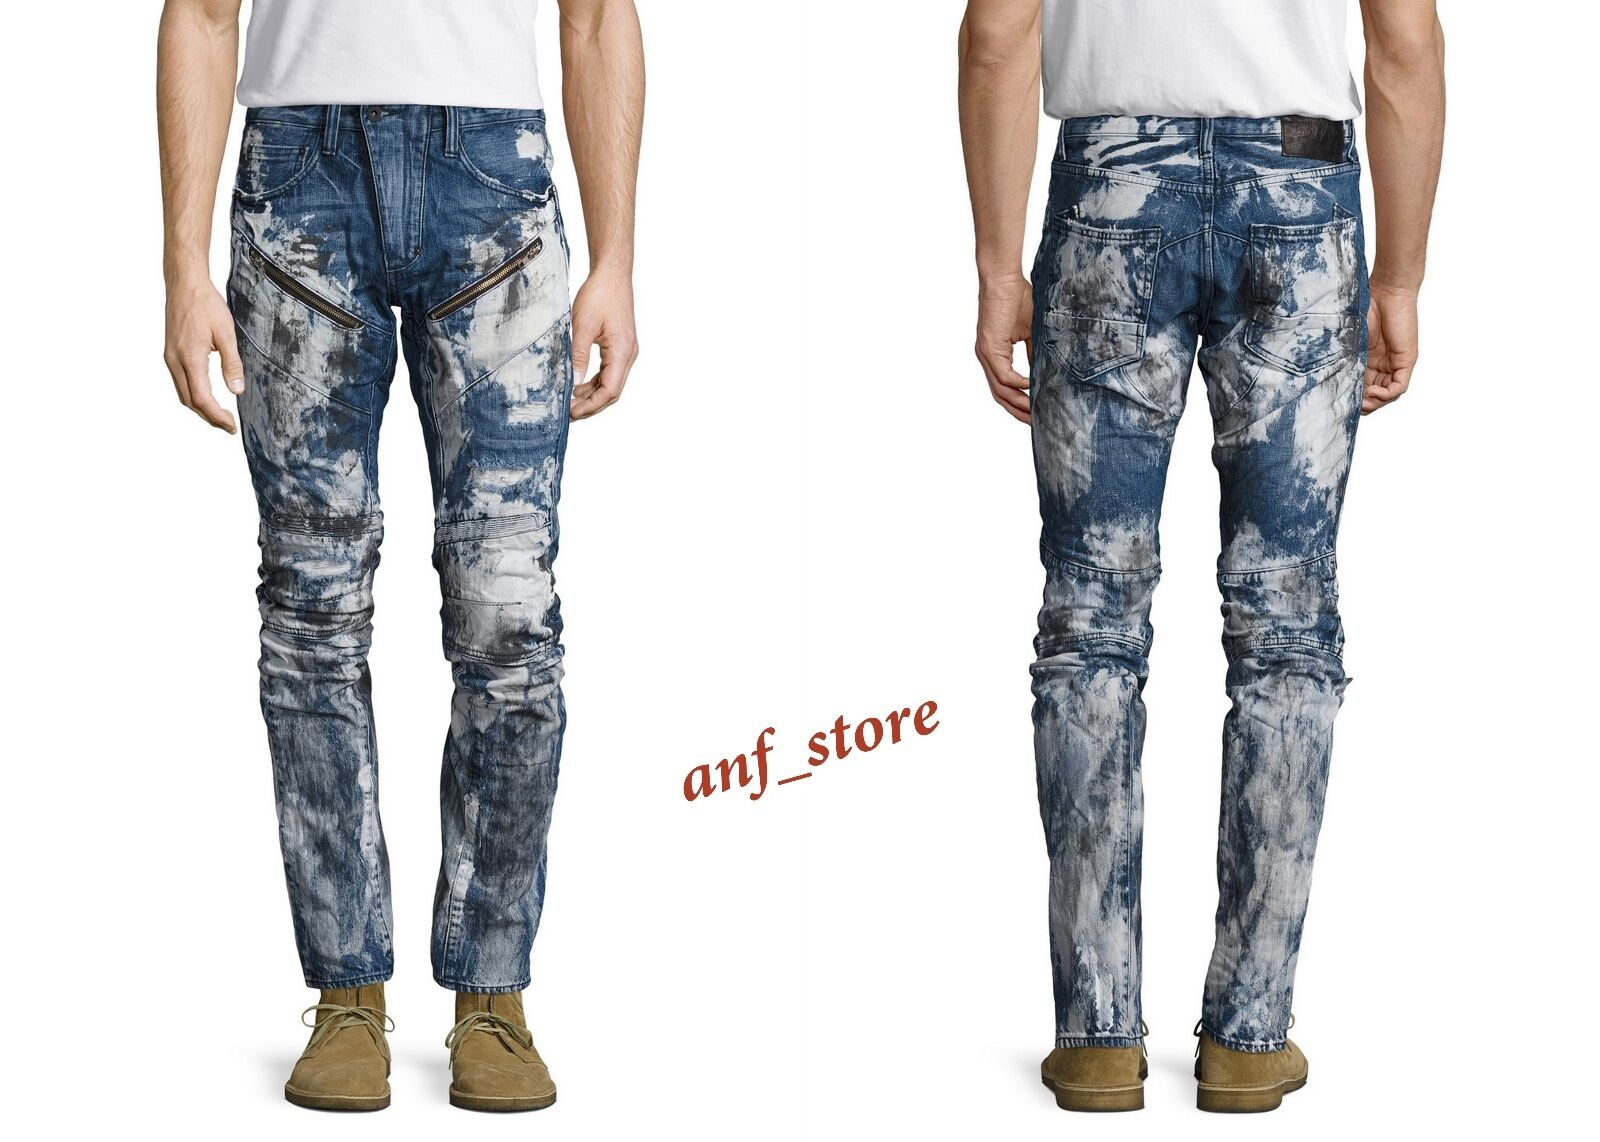 NWT PRPS Goods JAPAN BARRACUDA Men Jeans 36 x 32 Faded DISTRESSED Printed